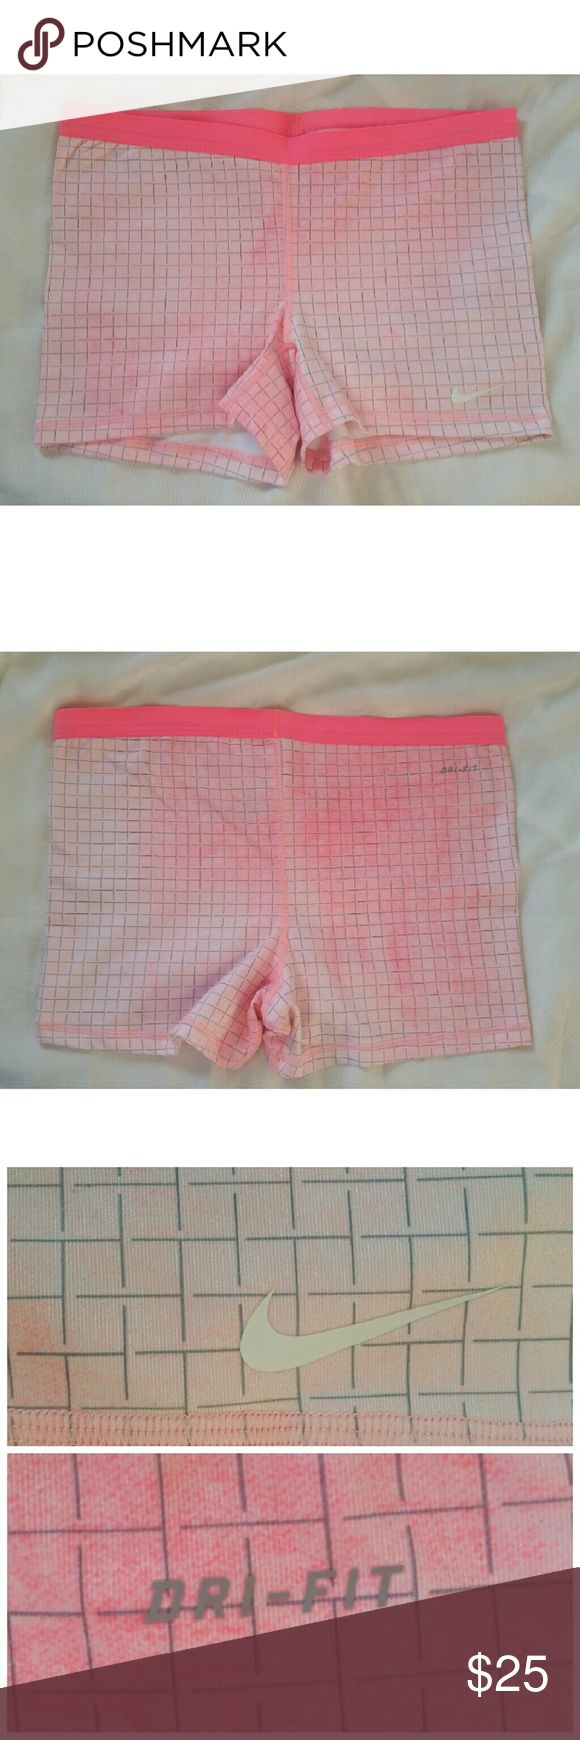 NWOT Nike Shorts NWOT Nike Shorts. These are perfect for the gym or a run!  Tags removed but never worn. Nike Shorts